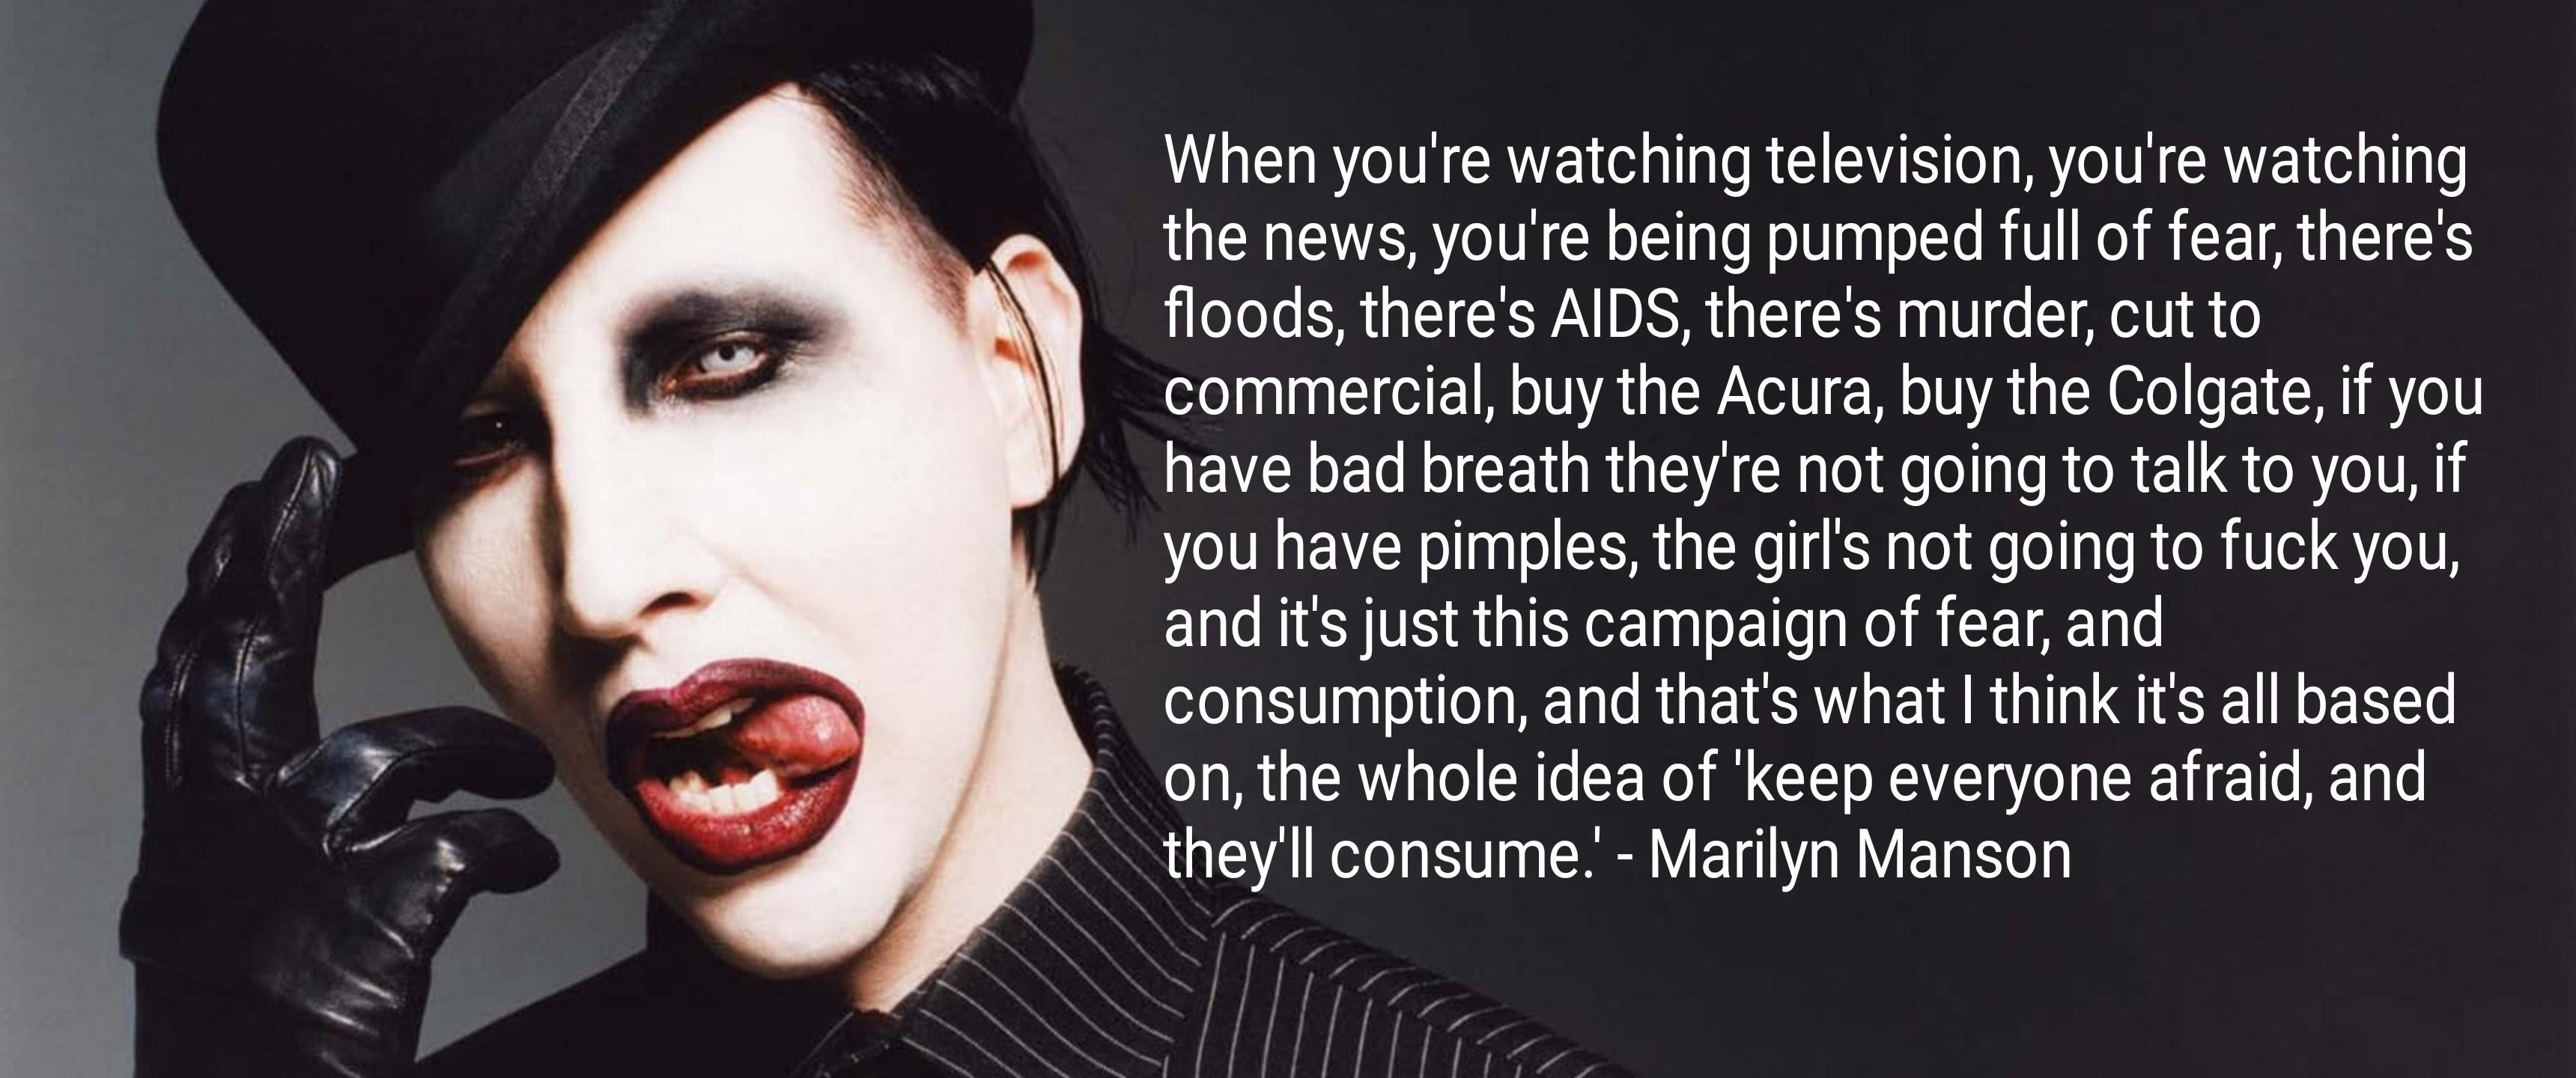 When you're watching television, you're watching the news, you're being pumped full of fear, there's floods, there's AIDS, there's murder, cut to commercial, buy the Acura, buy the Colgate, if you have bad breath they're not going to talk to you, if you have pimples, the girl's not going to fuck you, and it's just this campaign of fear, and consumption, and that's what I think it's all based on, the whole idea of 'keep everyone afraid, and they'll consume.' - https://inspirational.ly